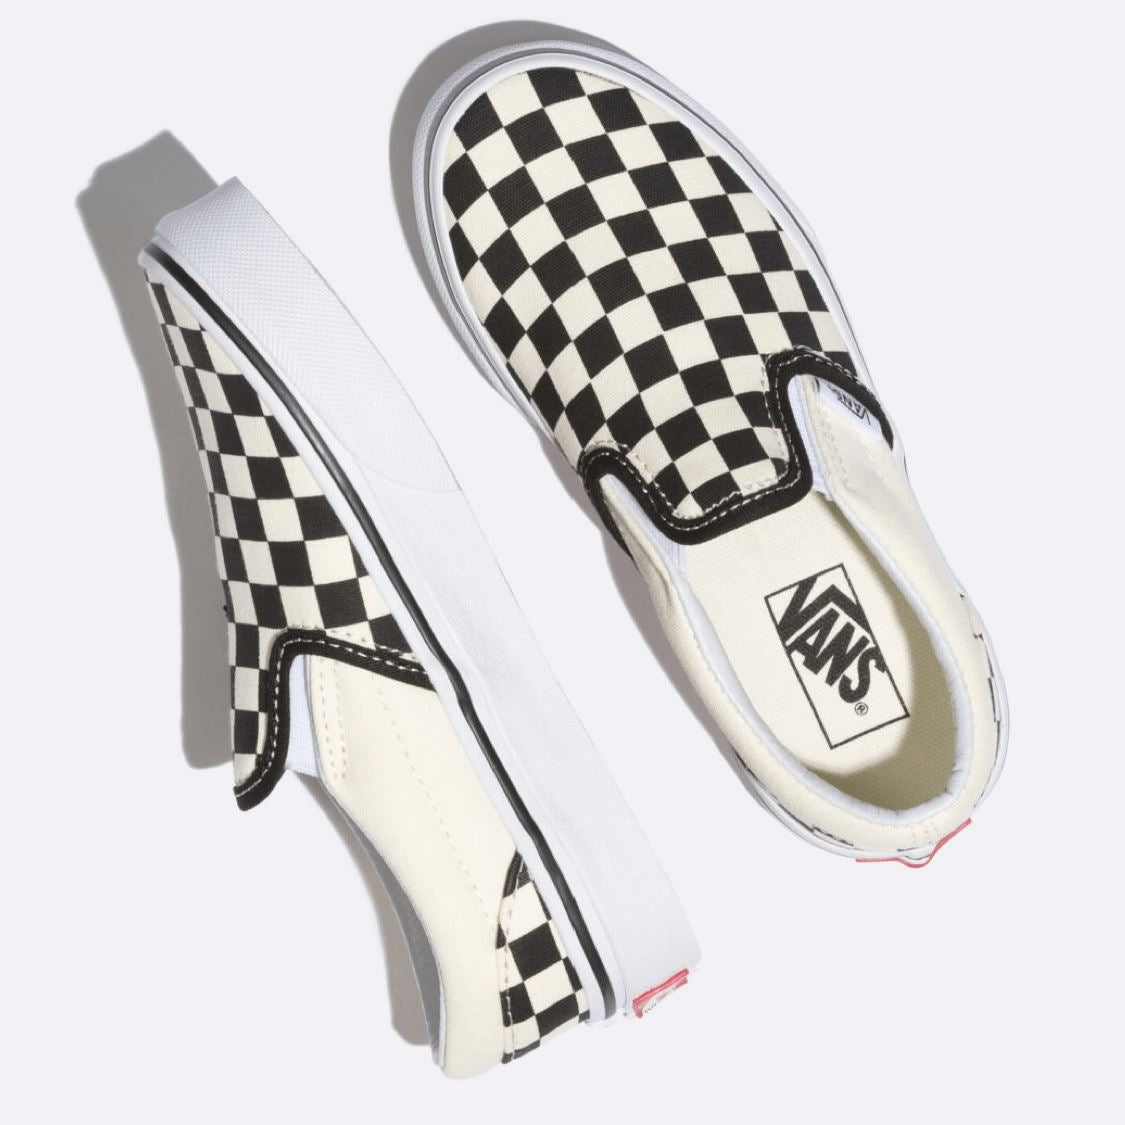 VN000ZBUE01 VANS - Classic Slip On Running Shoe - Black & White Checkerboard (Kids 10.5 - Youth 4) footwear Vans